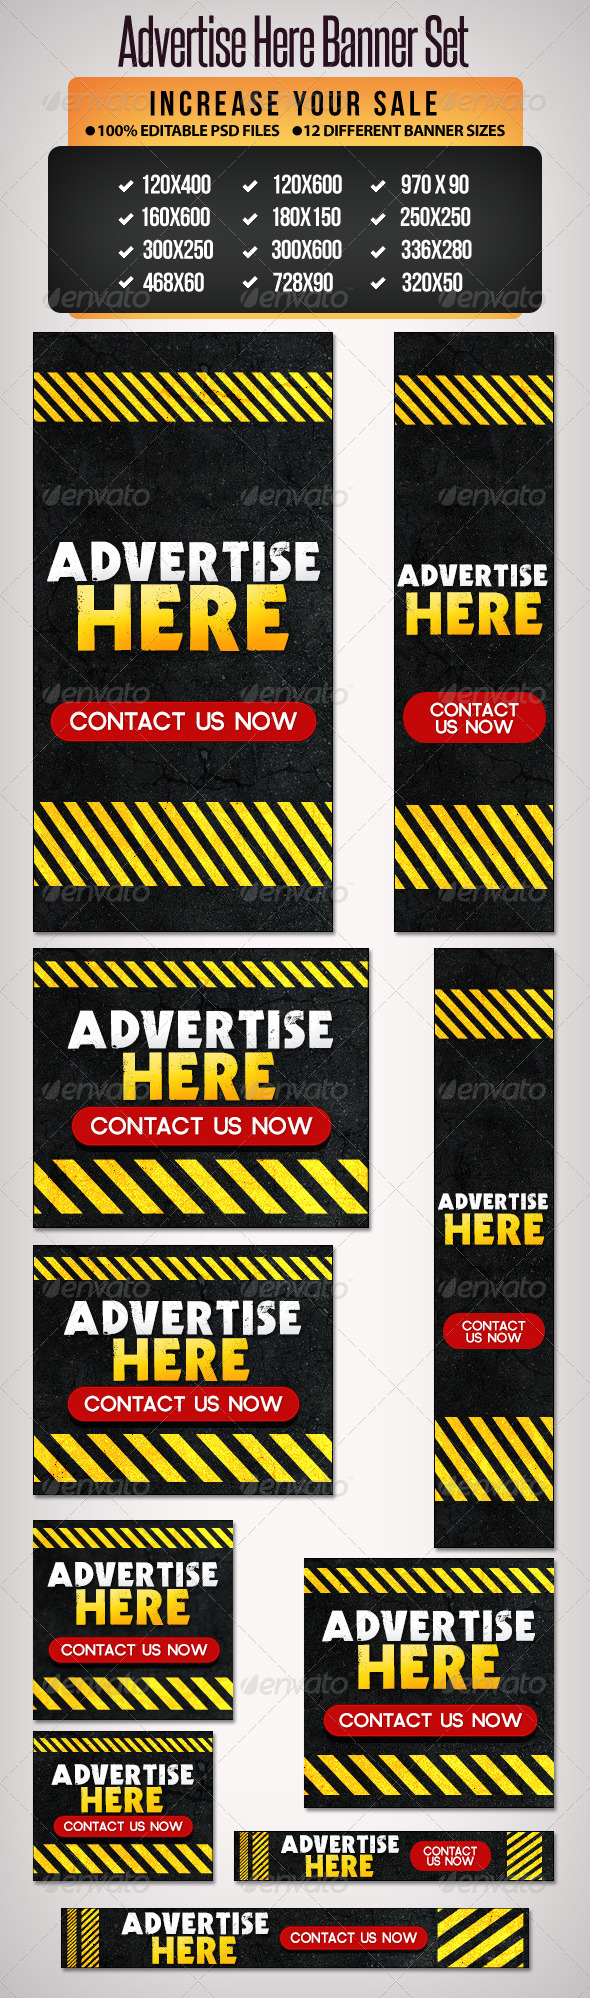 GraphicRiver Advertise Here Banner Set 12 Google Sizes 5311103